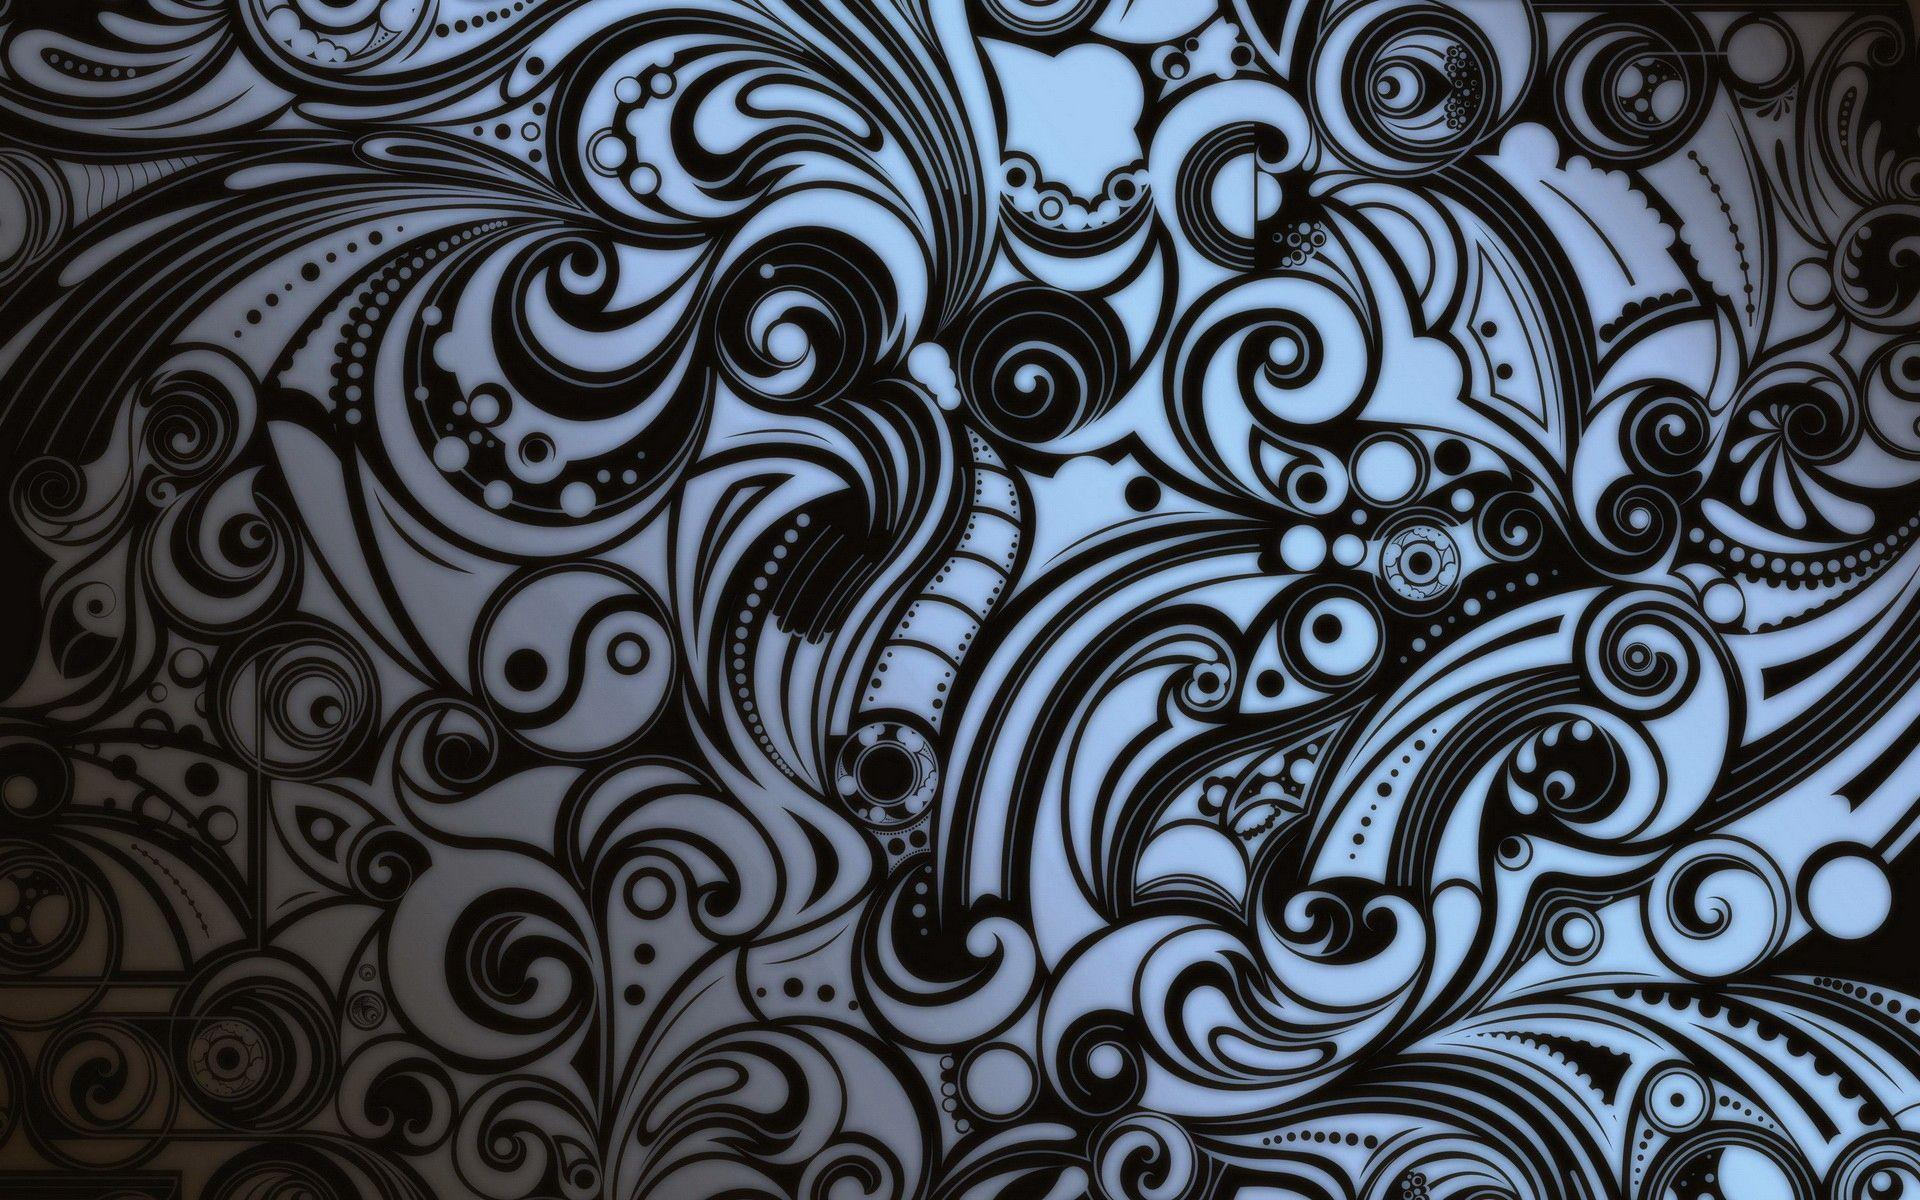 High Resolution 1920x1200 Hd Tattoos Abstract Tribal